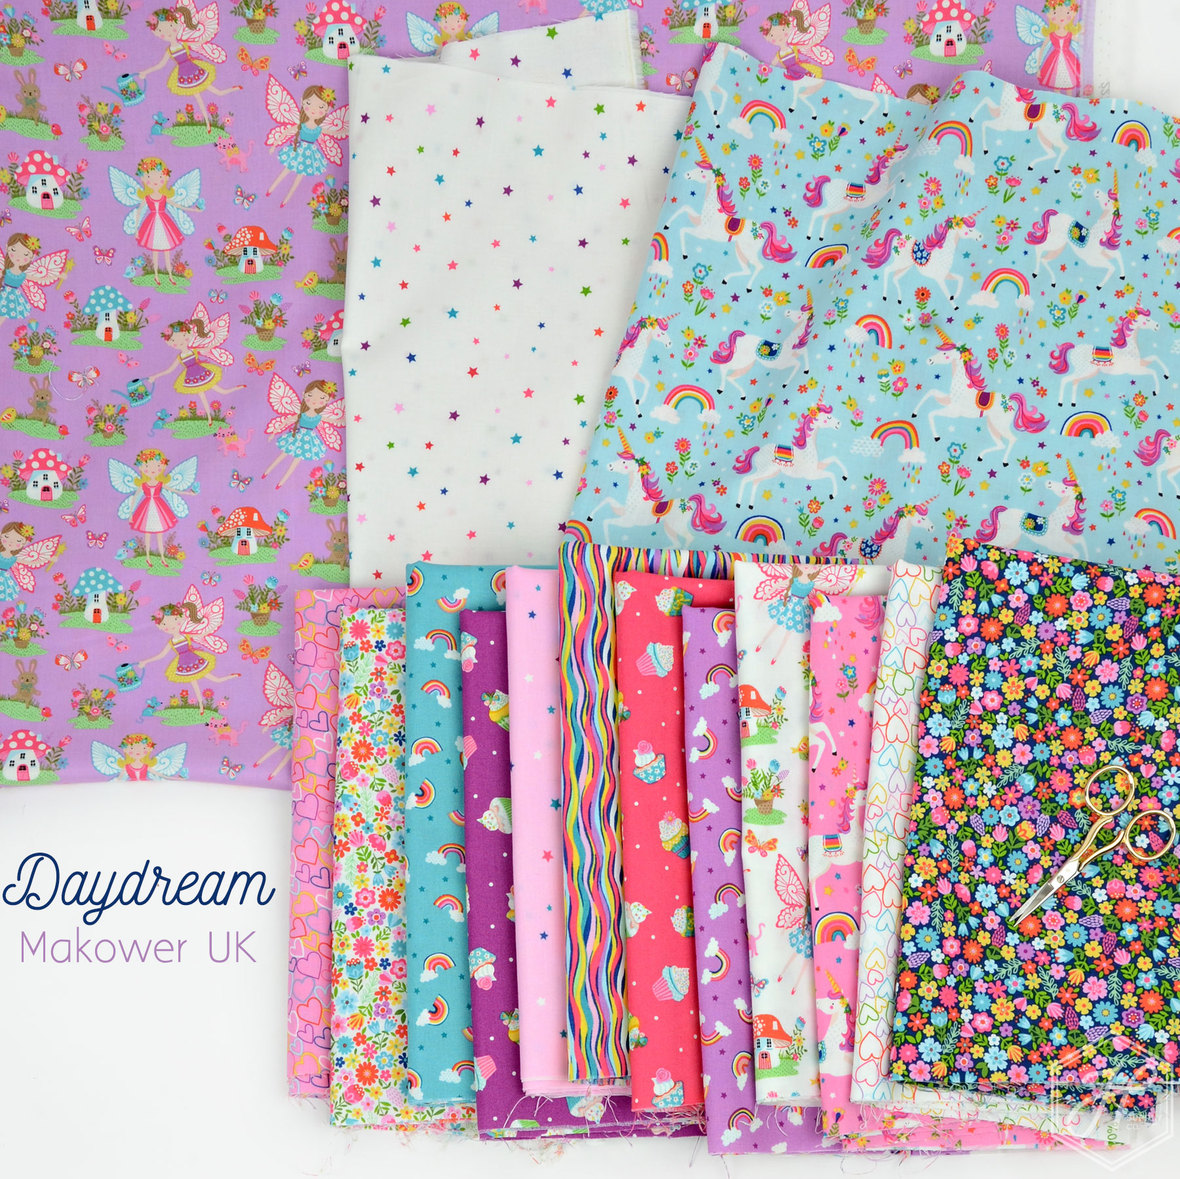 Daydream-Fabric-Andover-at-Hawthorne-Supply-Co